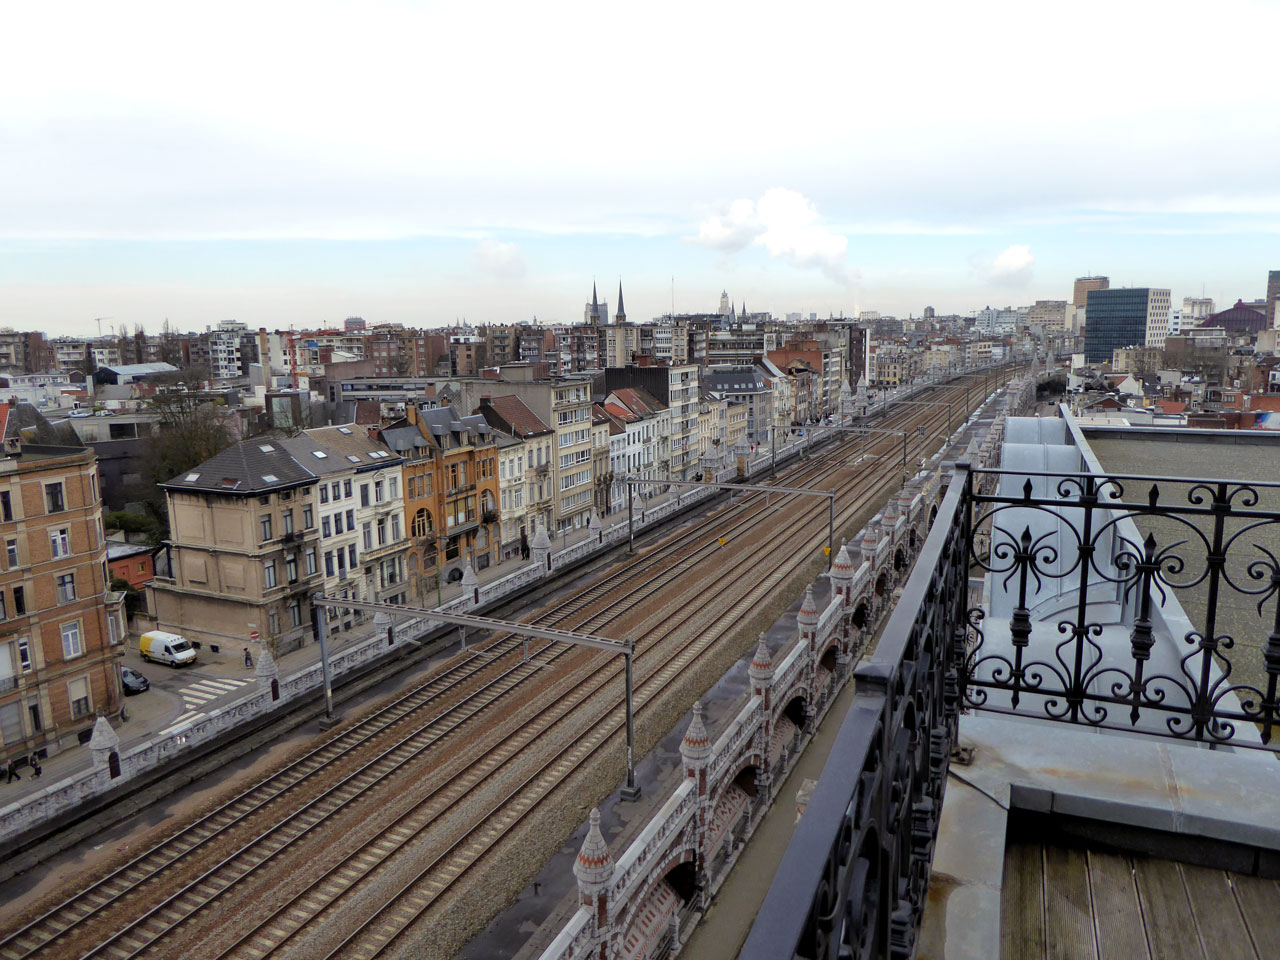 Looking out towards Antwerp's Jewish Quarter